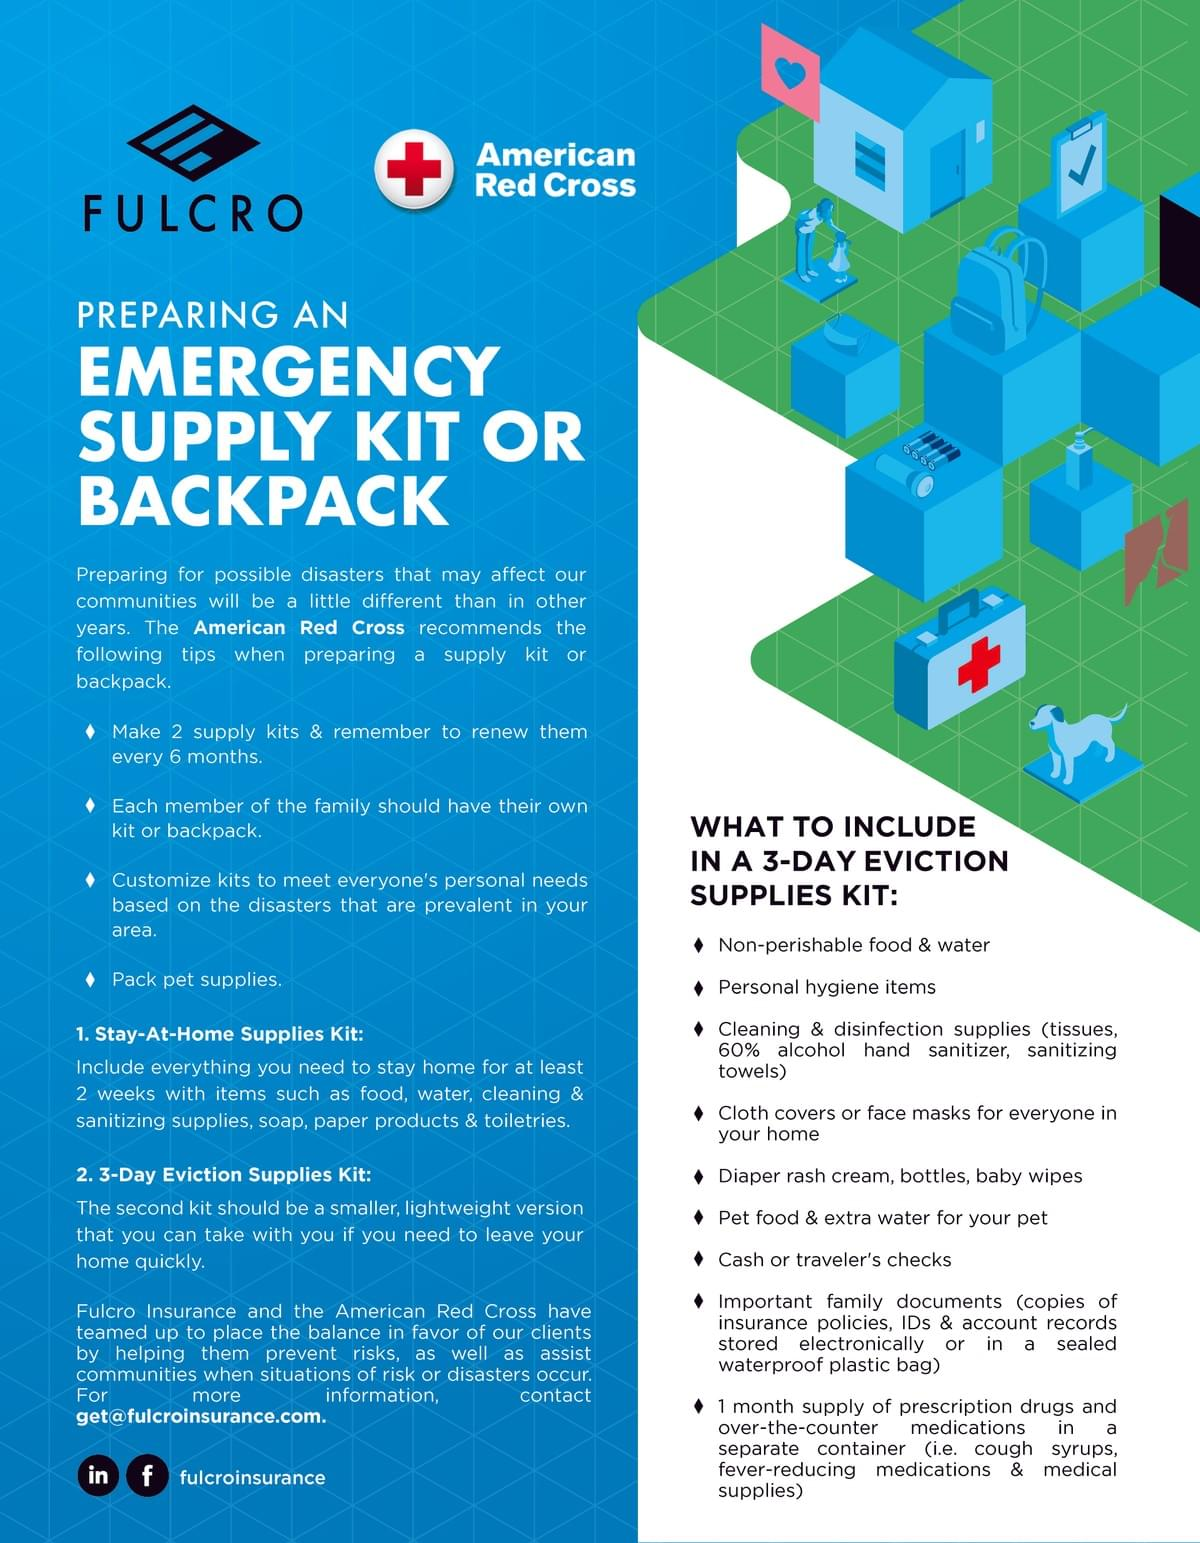 Tips on Preparing an Emergency Supply Kit or Backpack